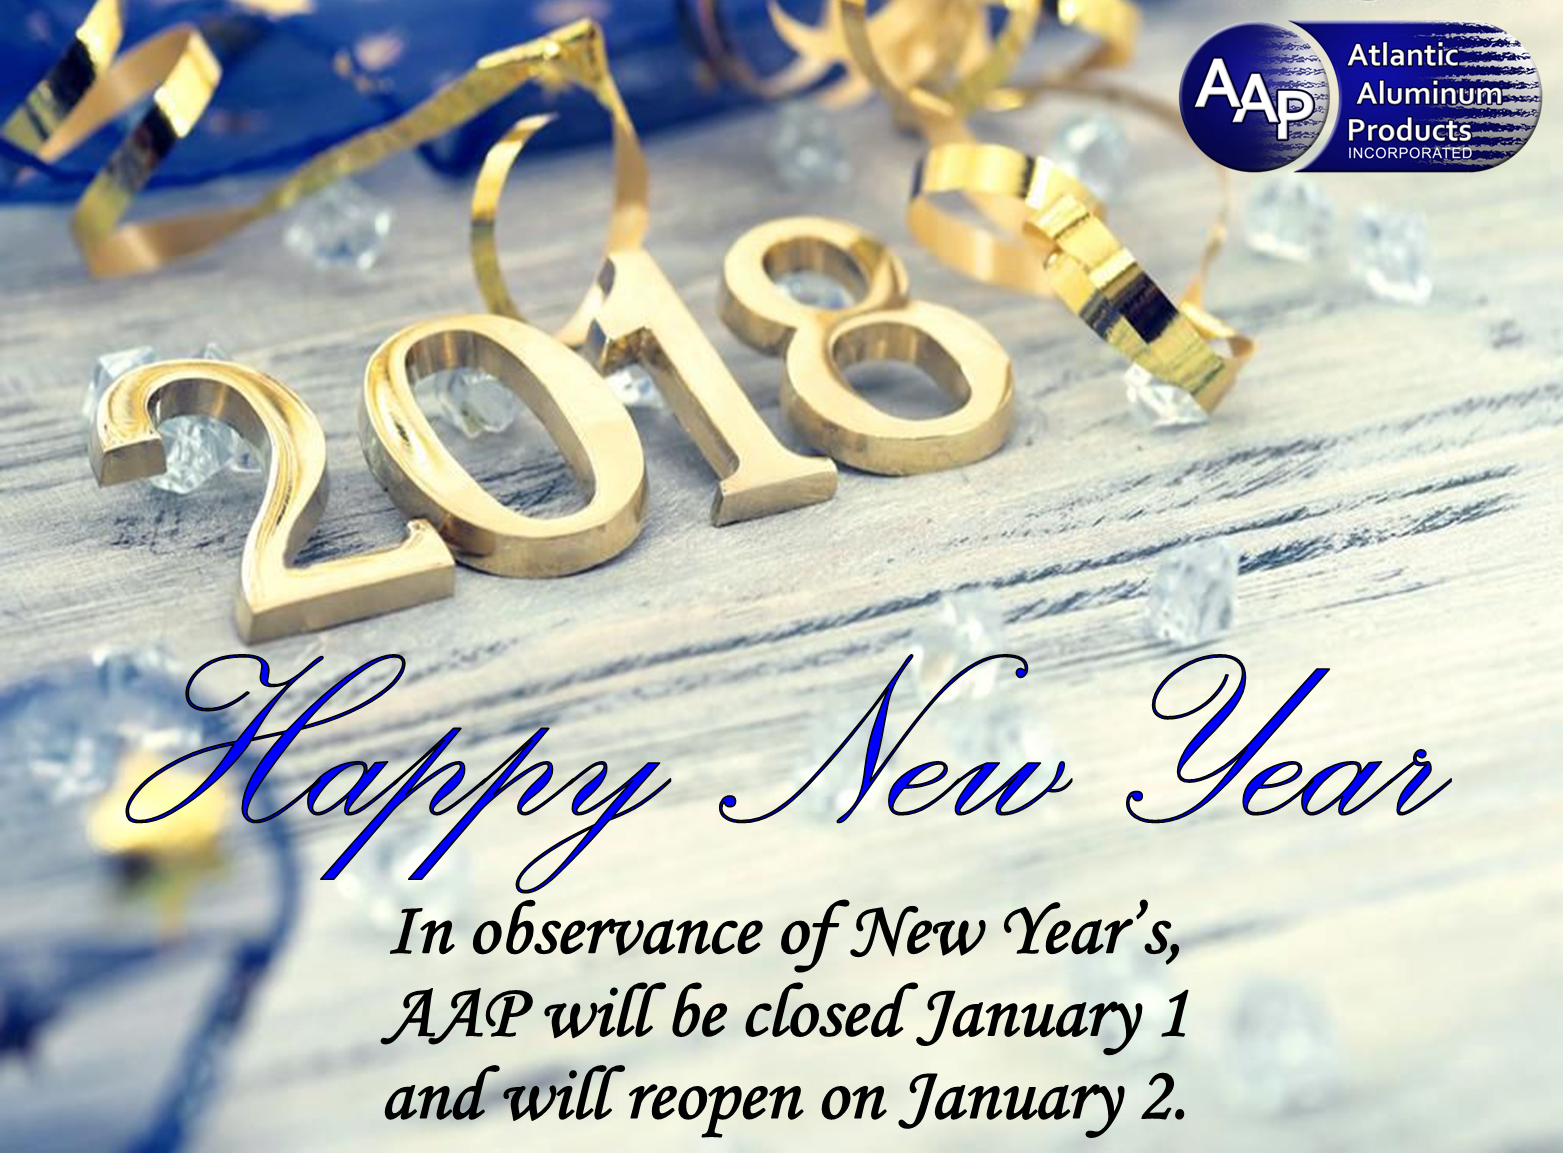 AAP wishes all our team members and valued customers a very Happy ...